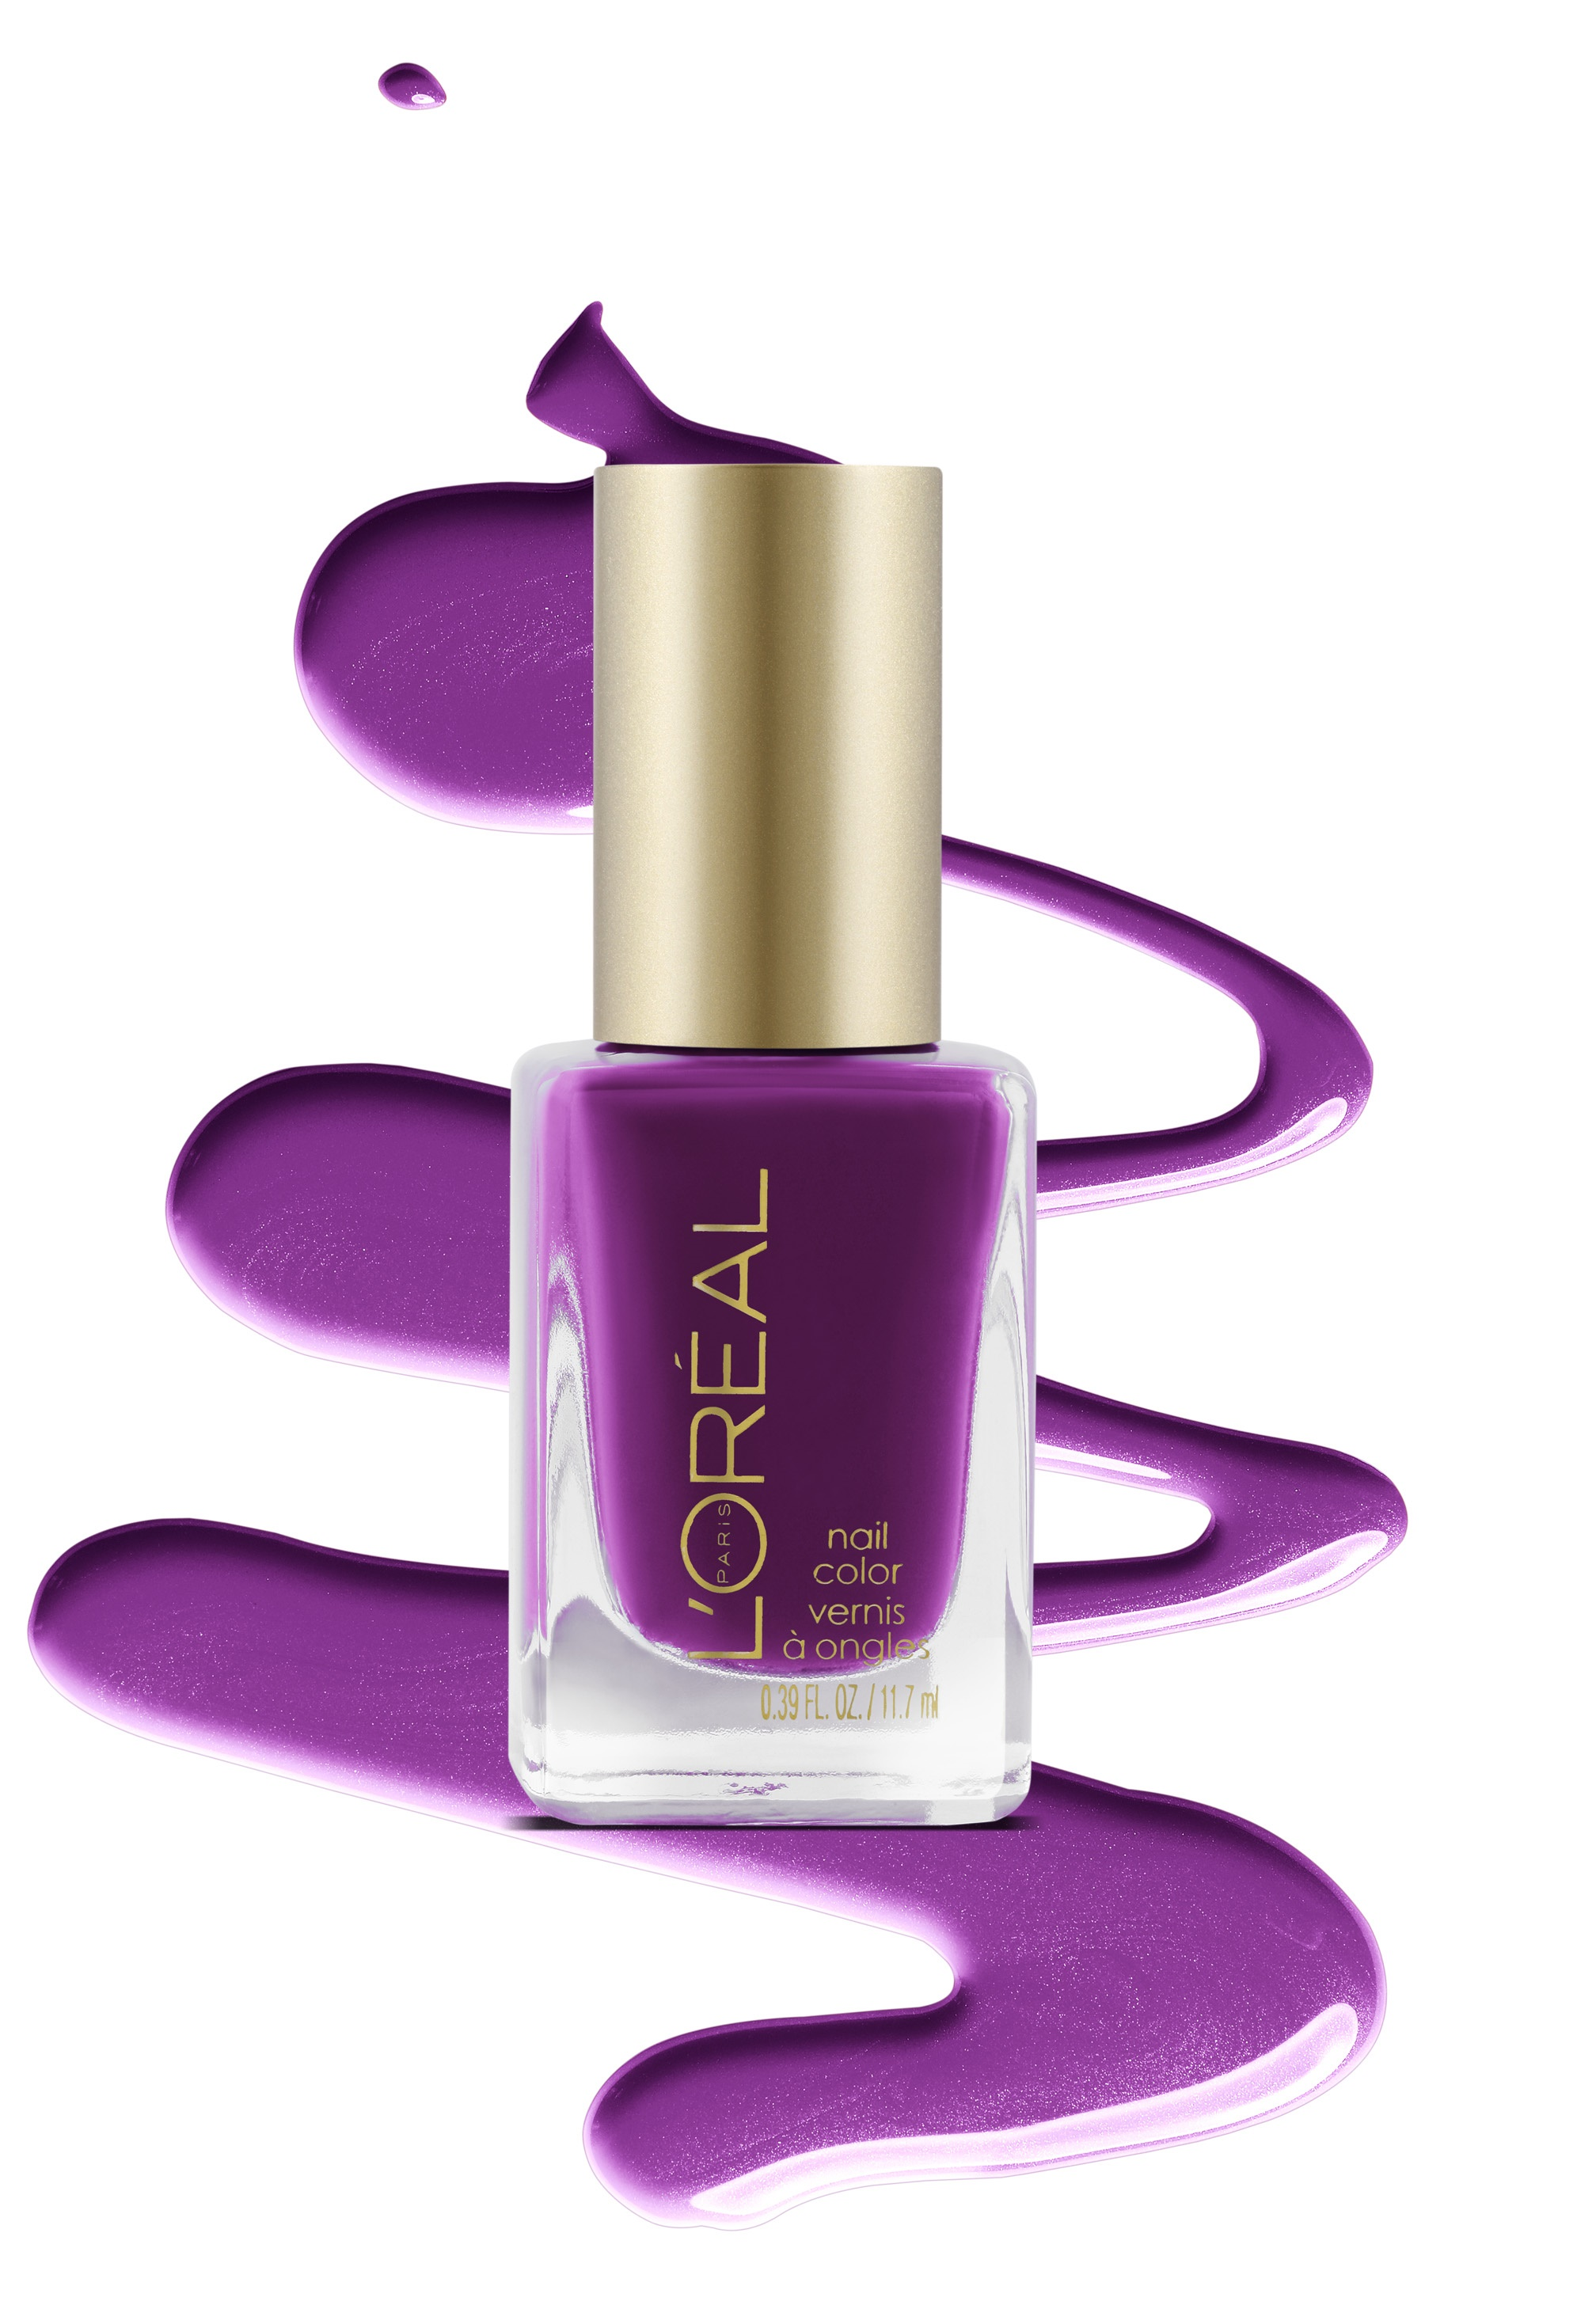 L'Oreal Paris Color Riche Nail Color - 500 Violet Vixen  available at Nykaa for Rs.299